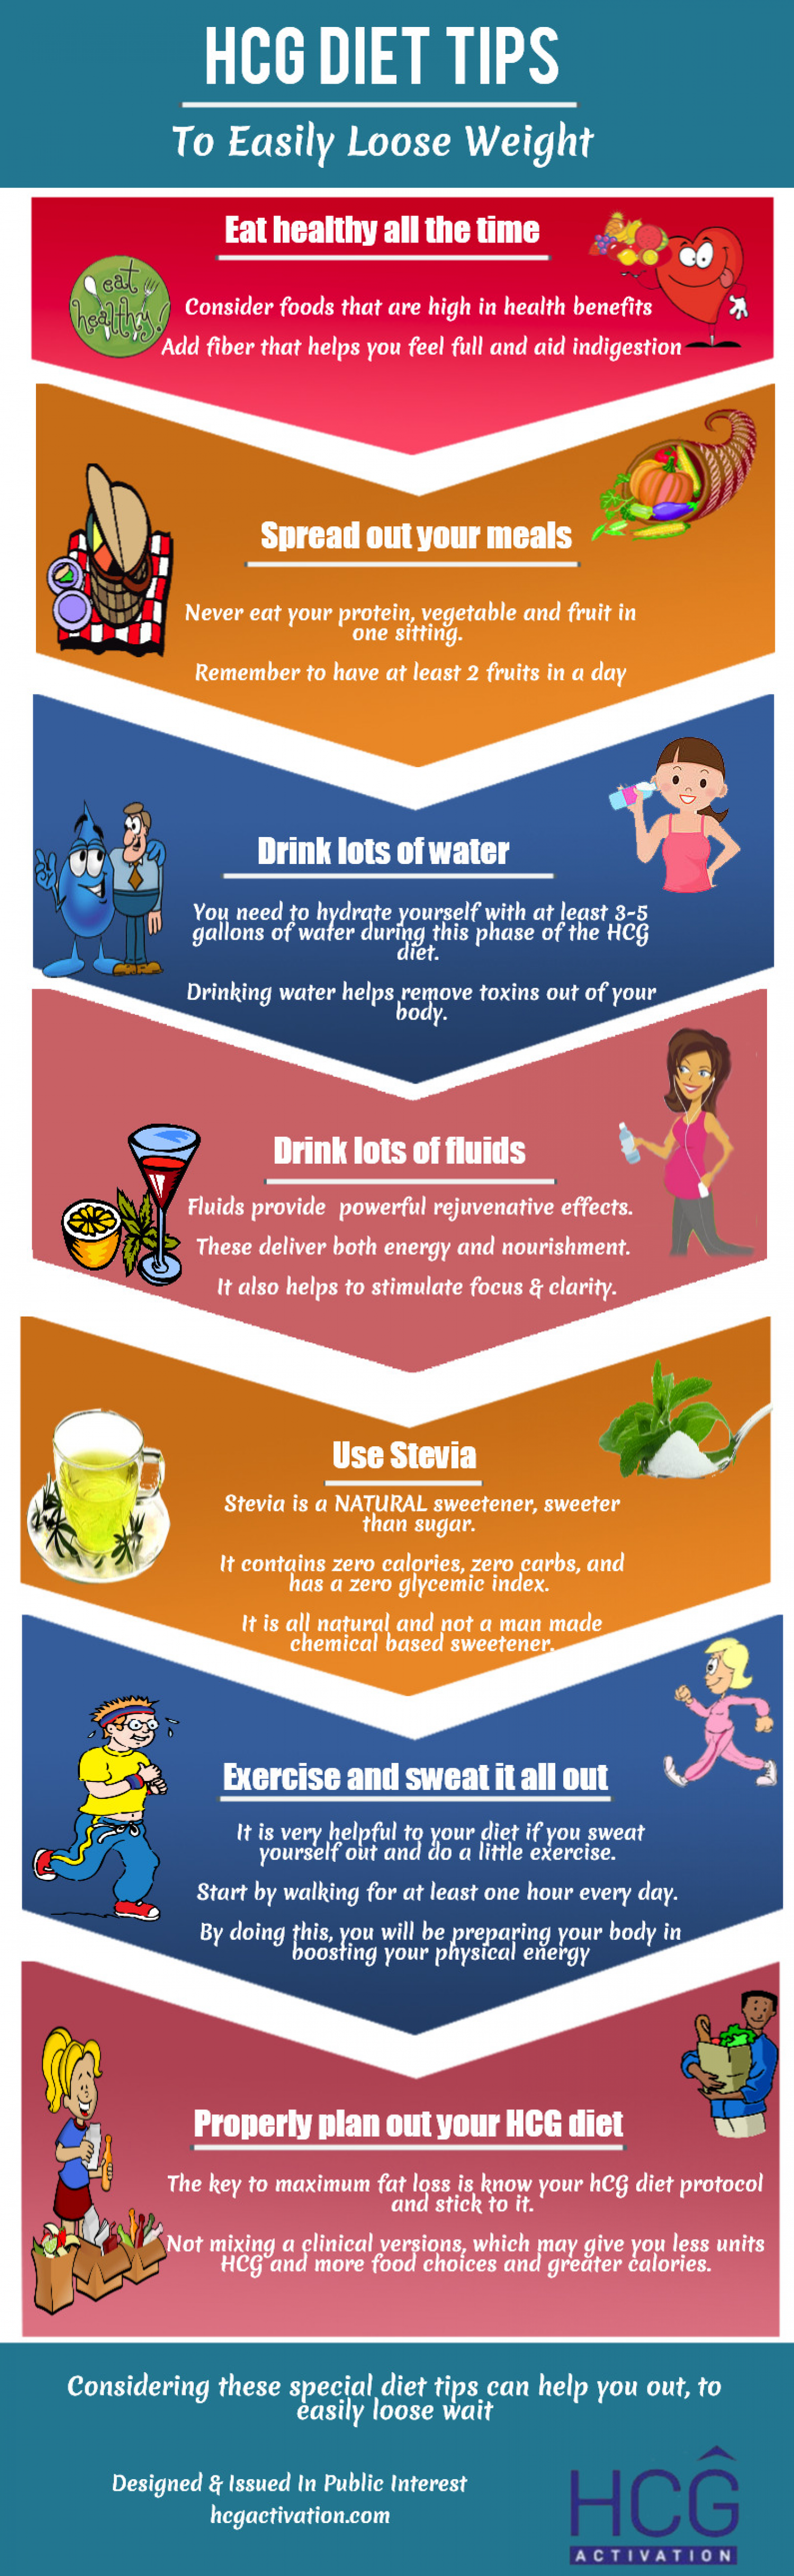 Hcg Diet Tips Infographic